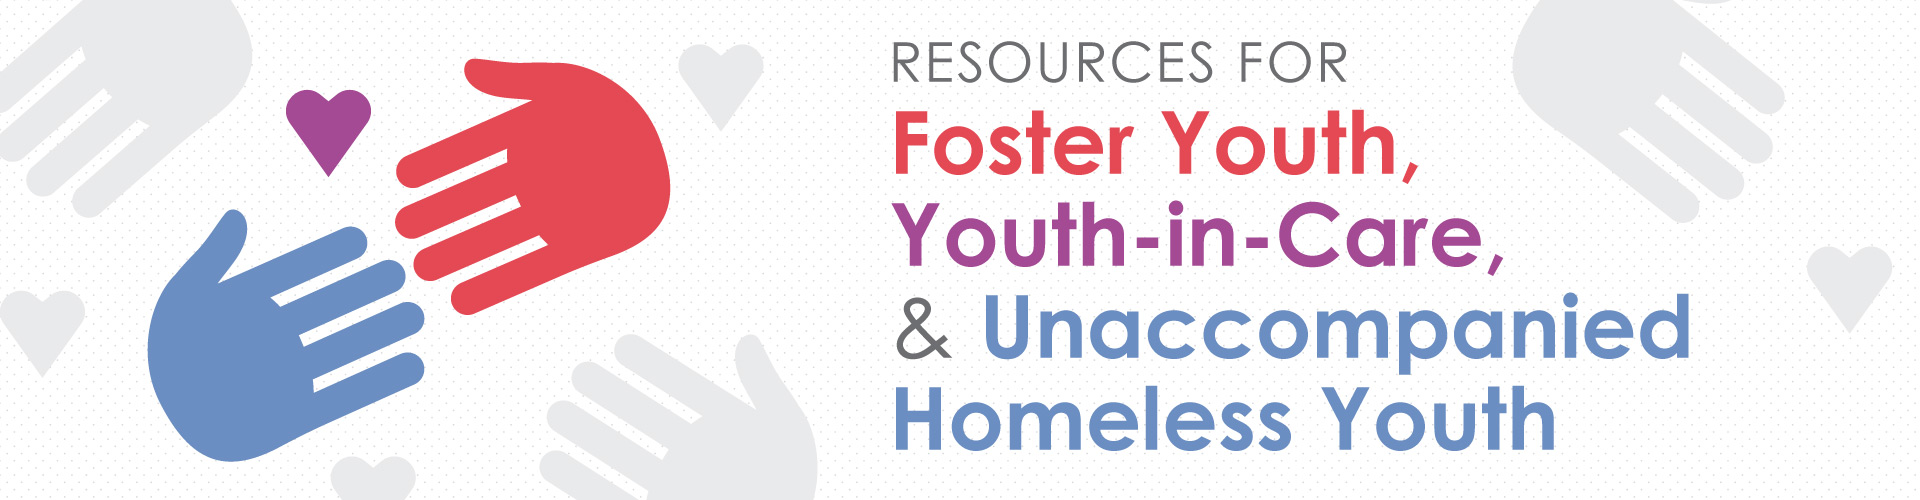 Foster Youth, Youth-in-Care, and Unaccompanied Homeless Youth